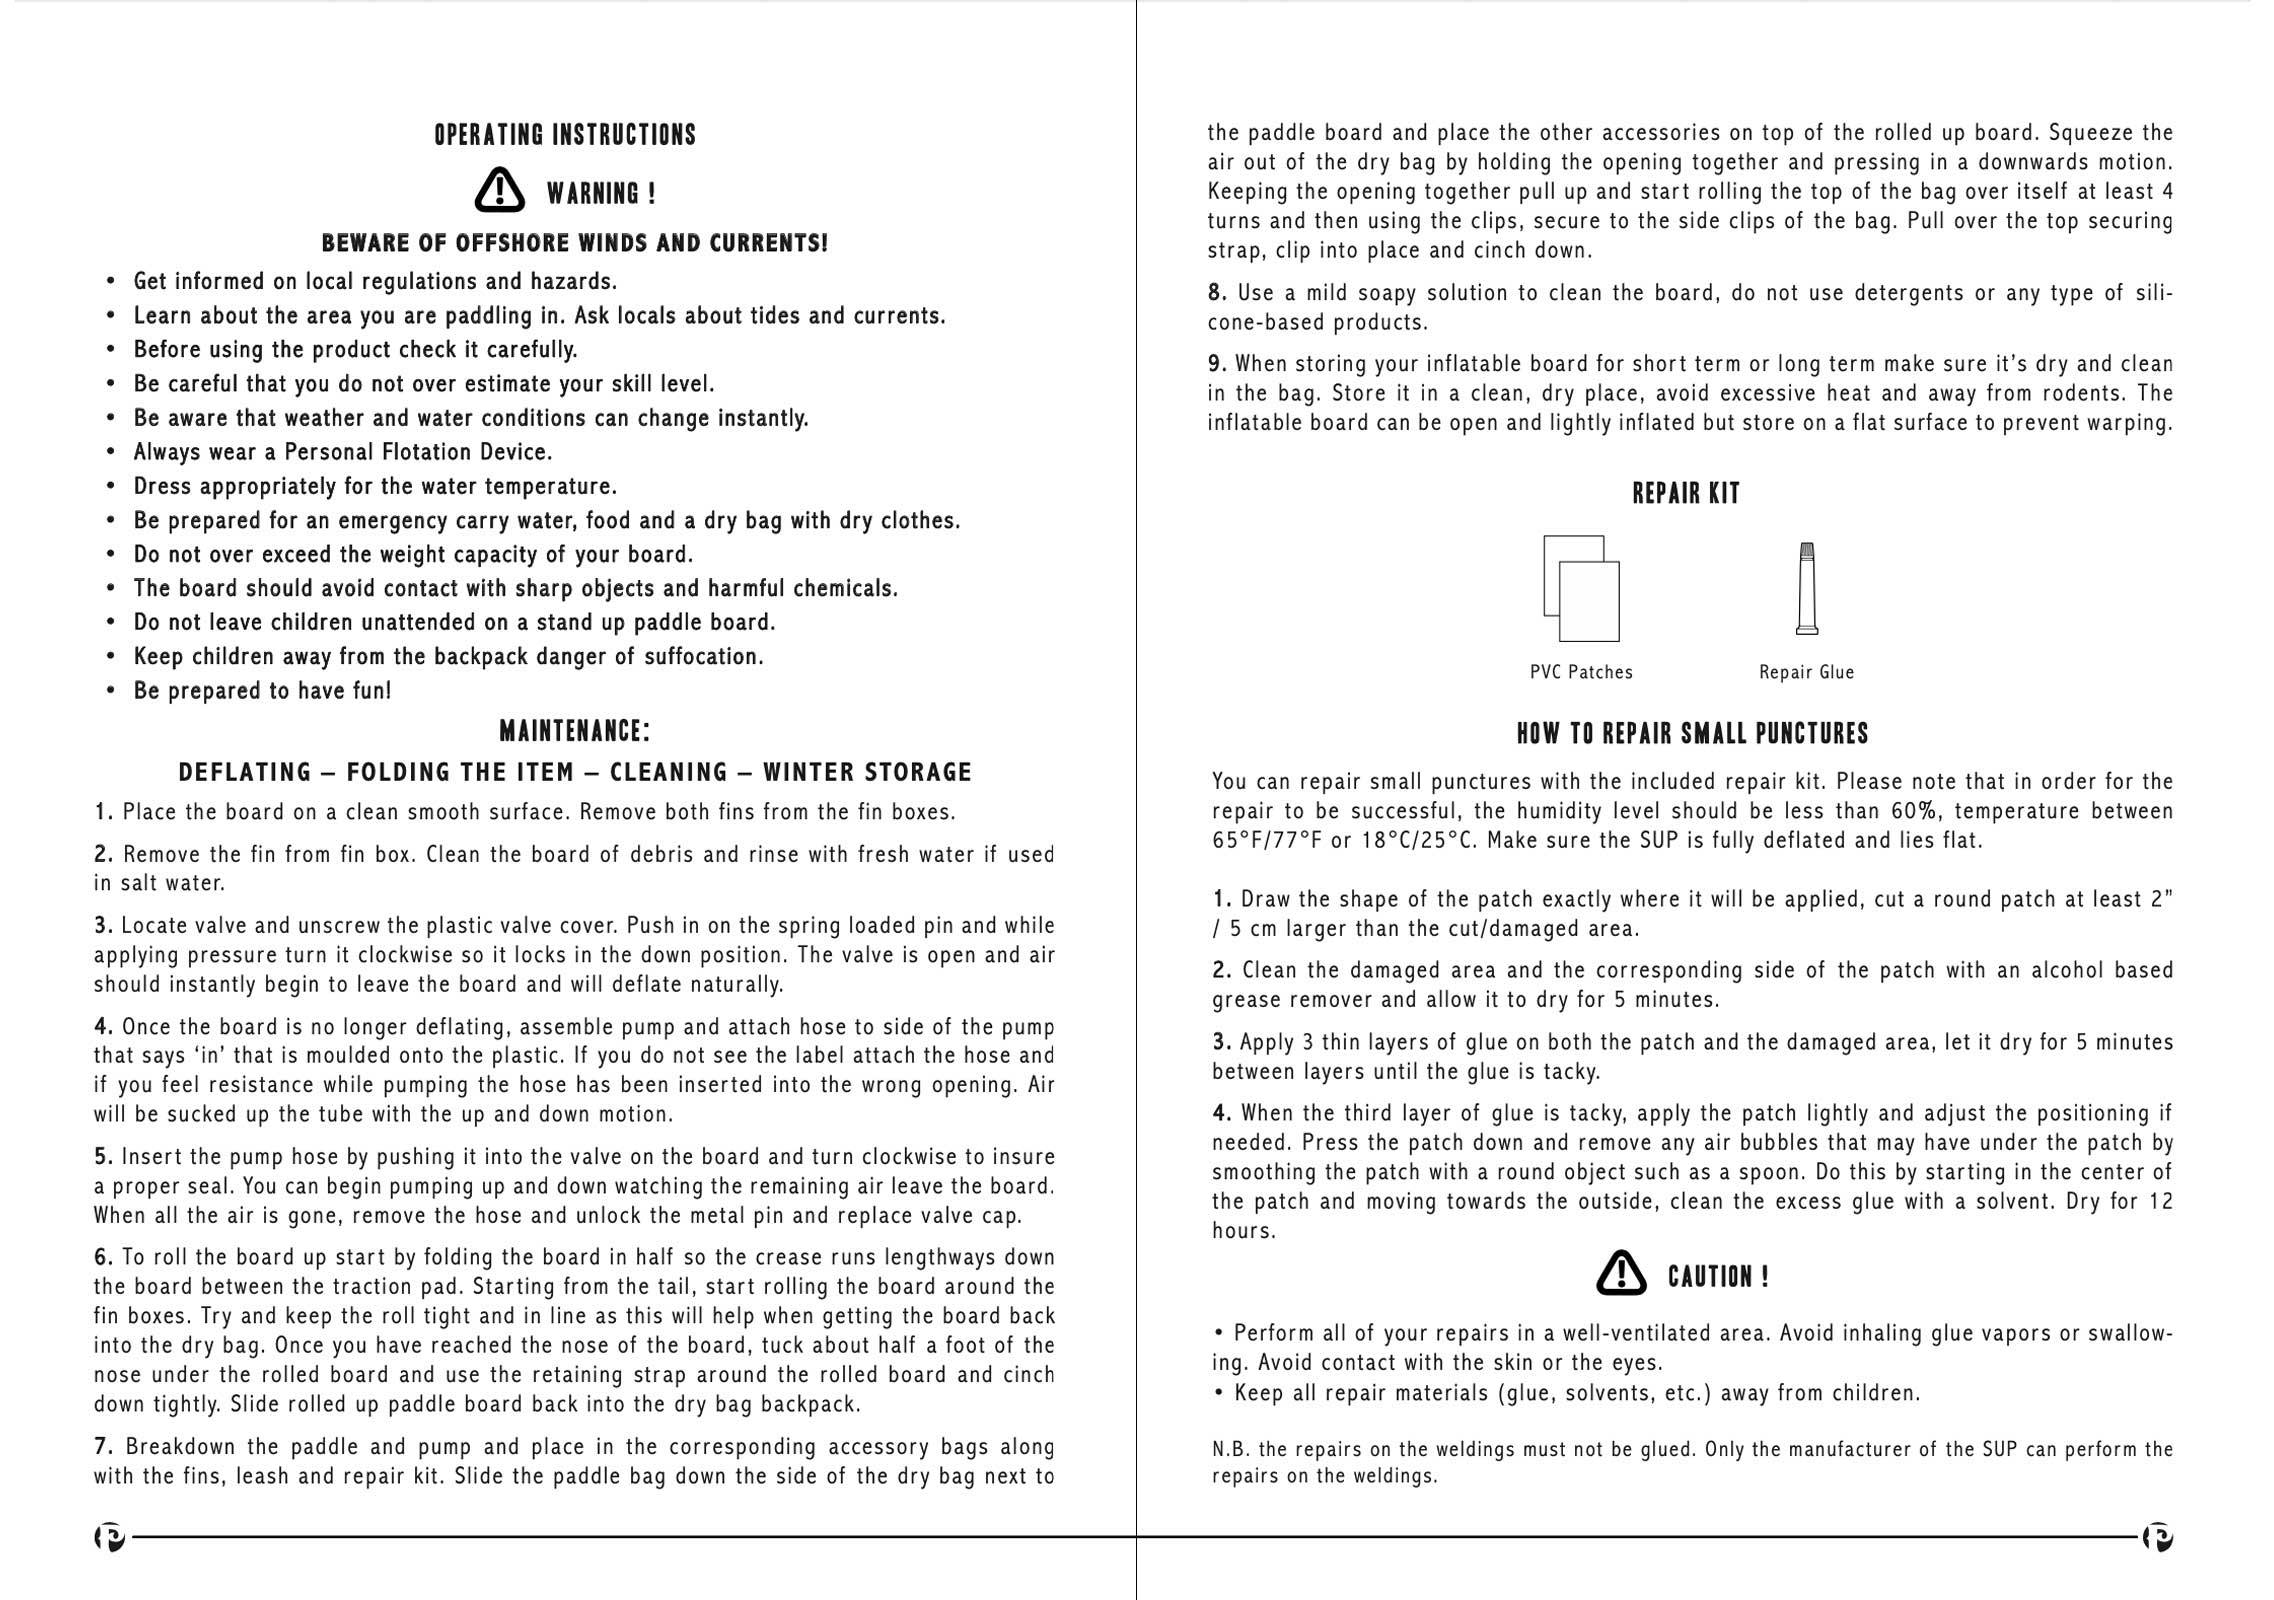 pau hana Solo SUP Backcountry inflatable stand up paddle board user manual page 6-7